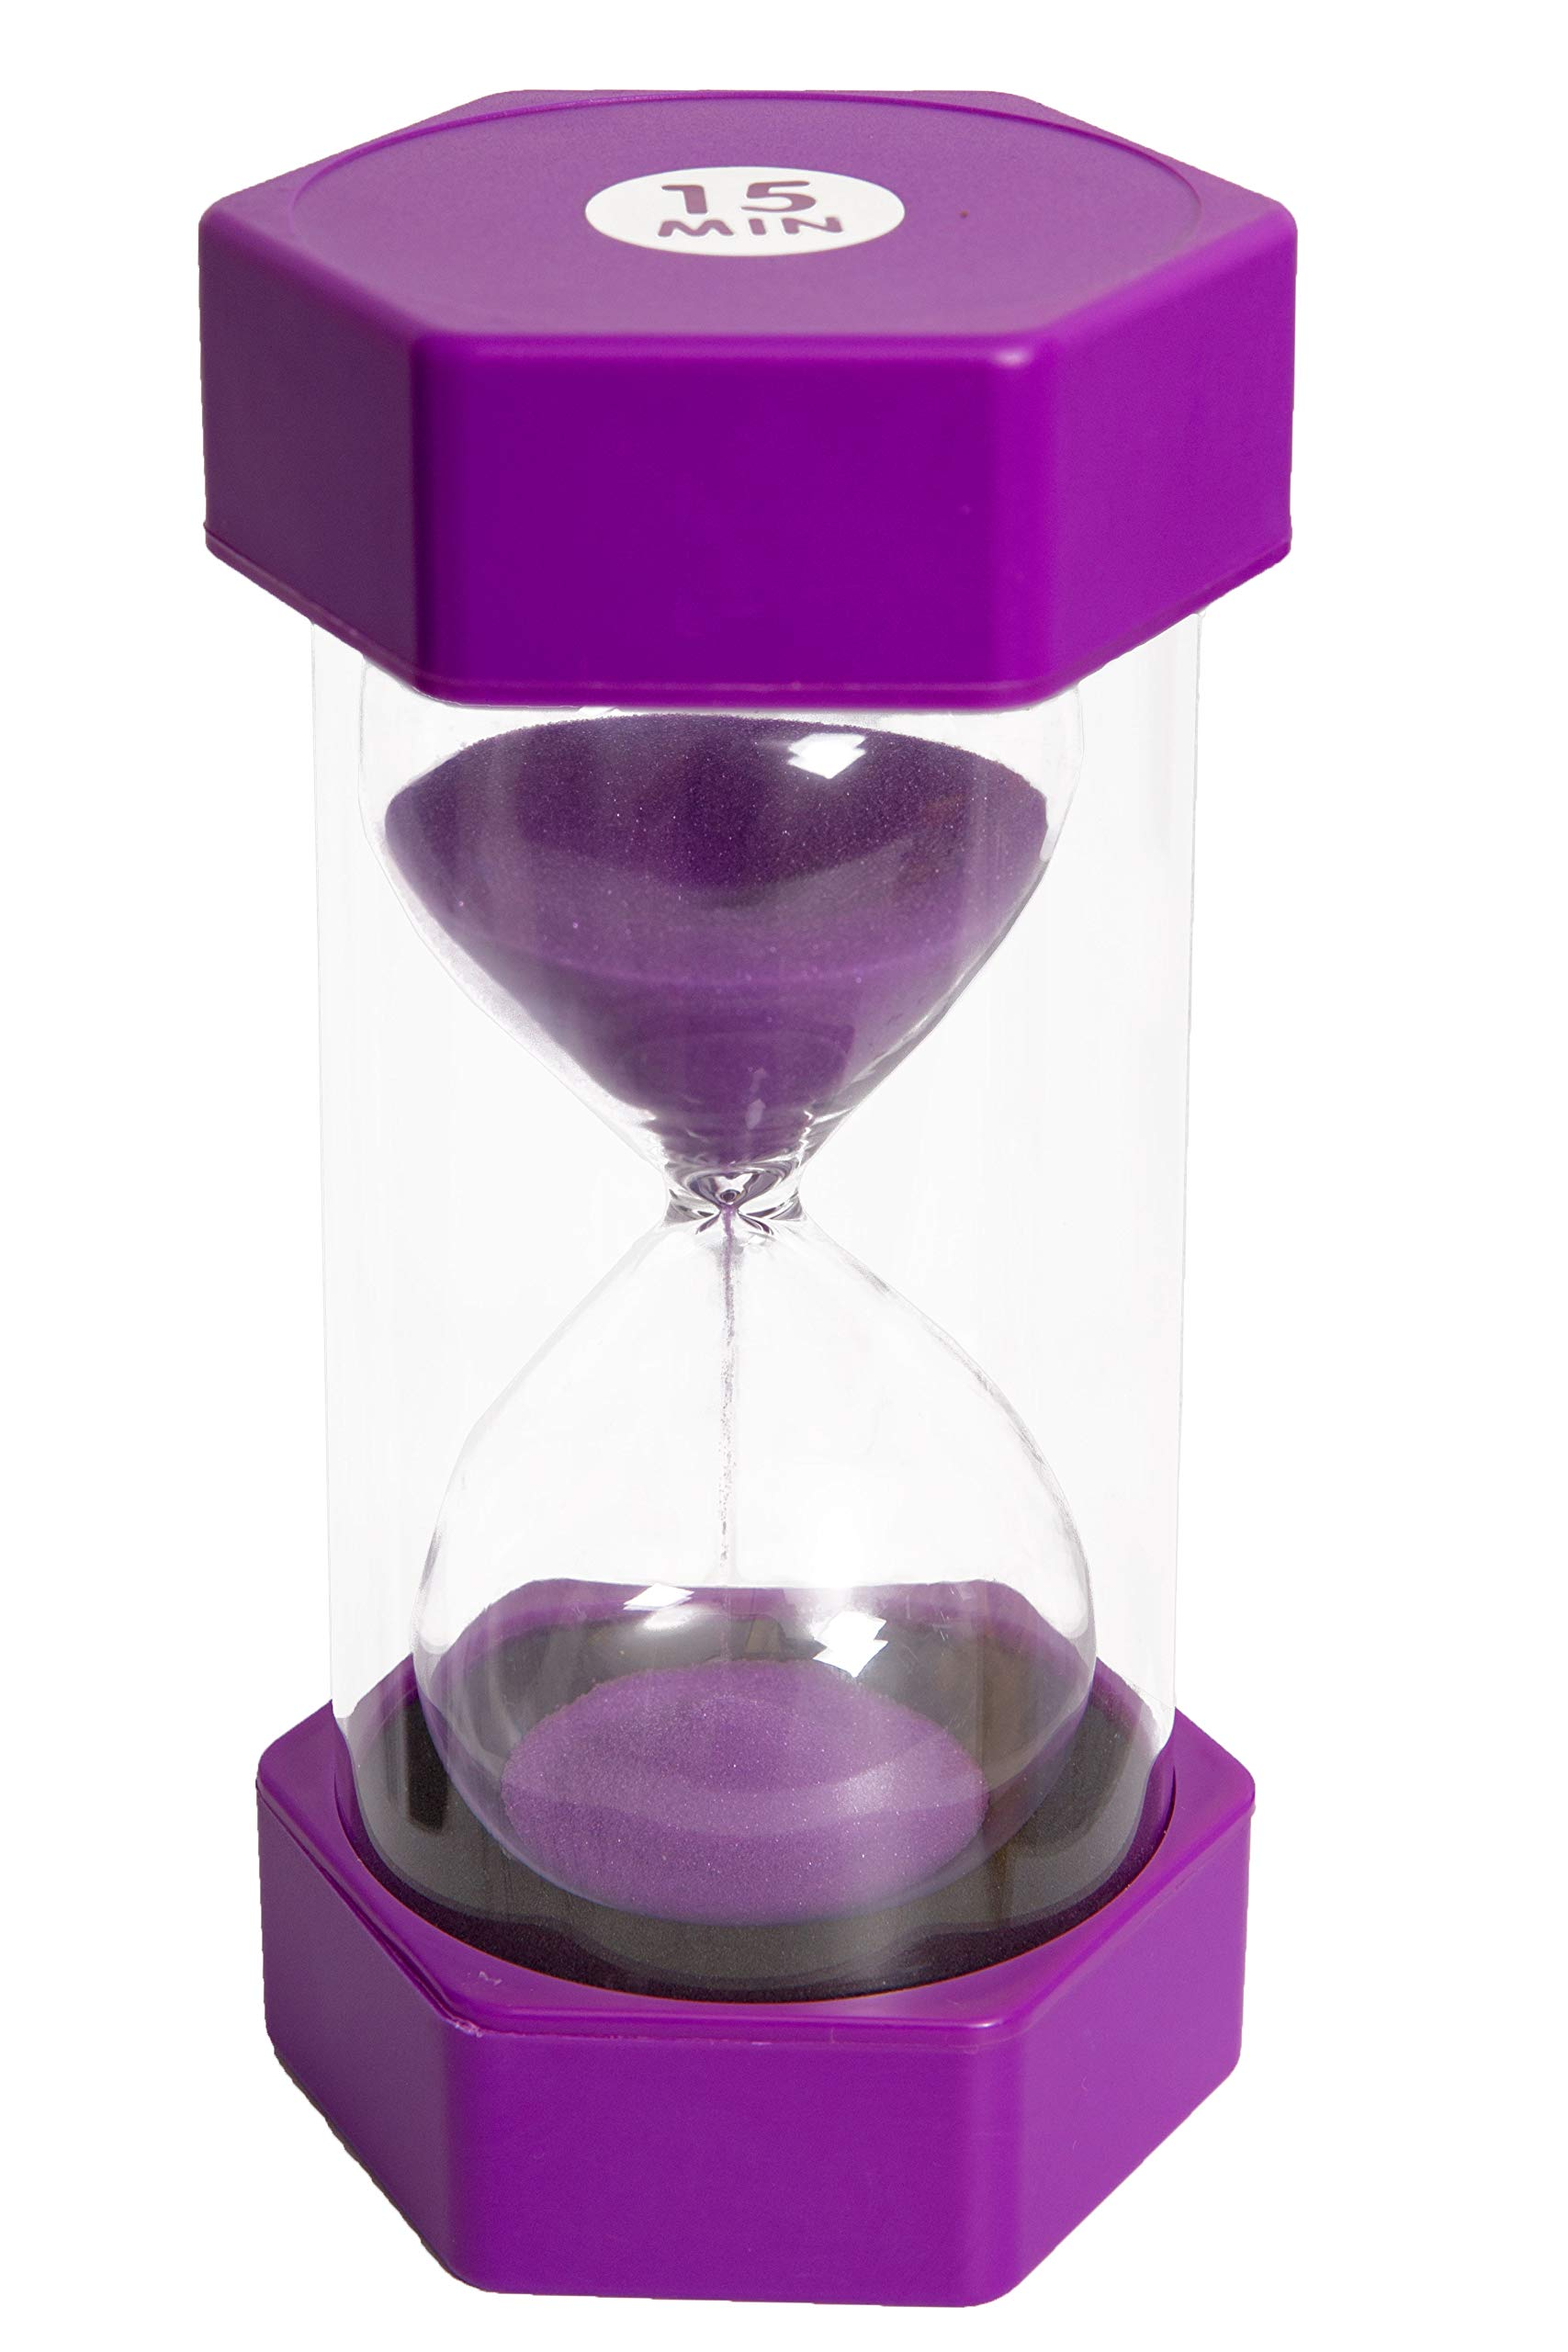 Sand timer hour glass for kids, teachers, therapists, classroom, office desk, kitchen, decoration, sensory room. 15 minute hourglass timers. Purple. Large size - by Playlearn USA